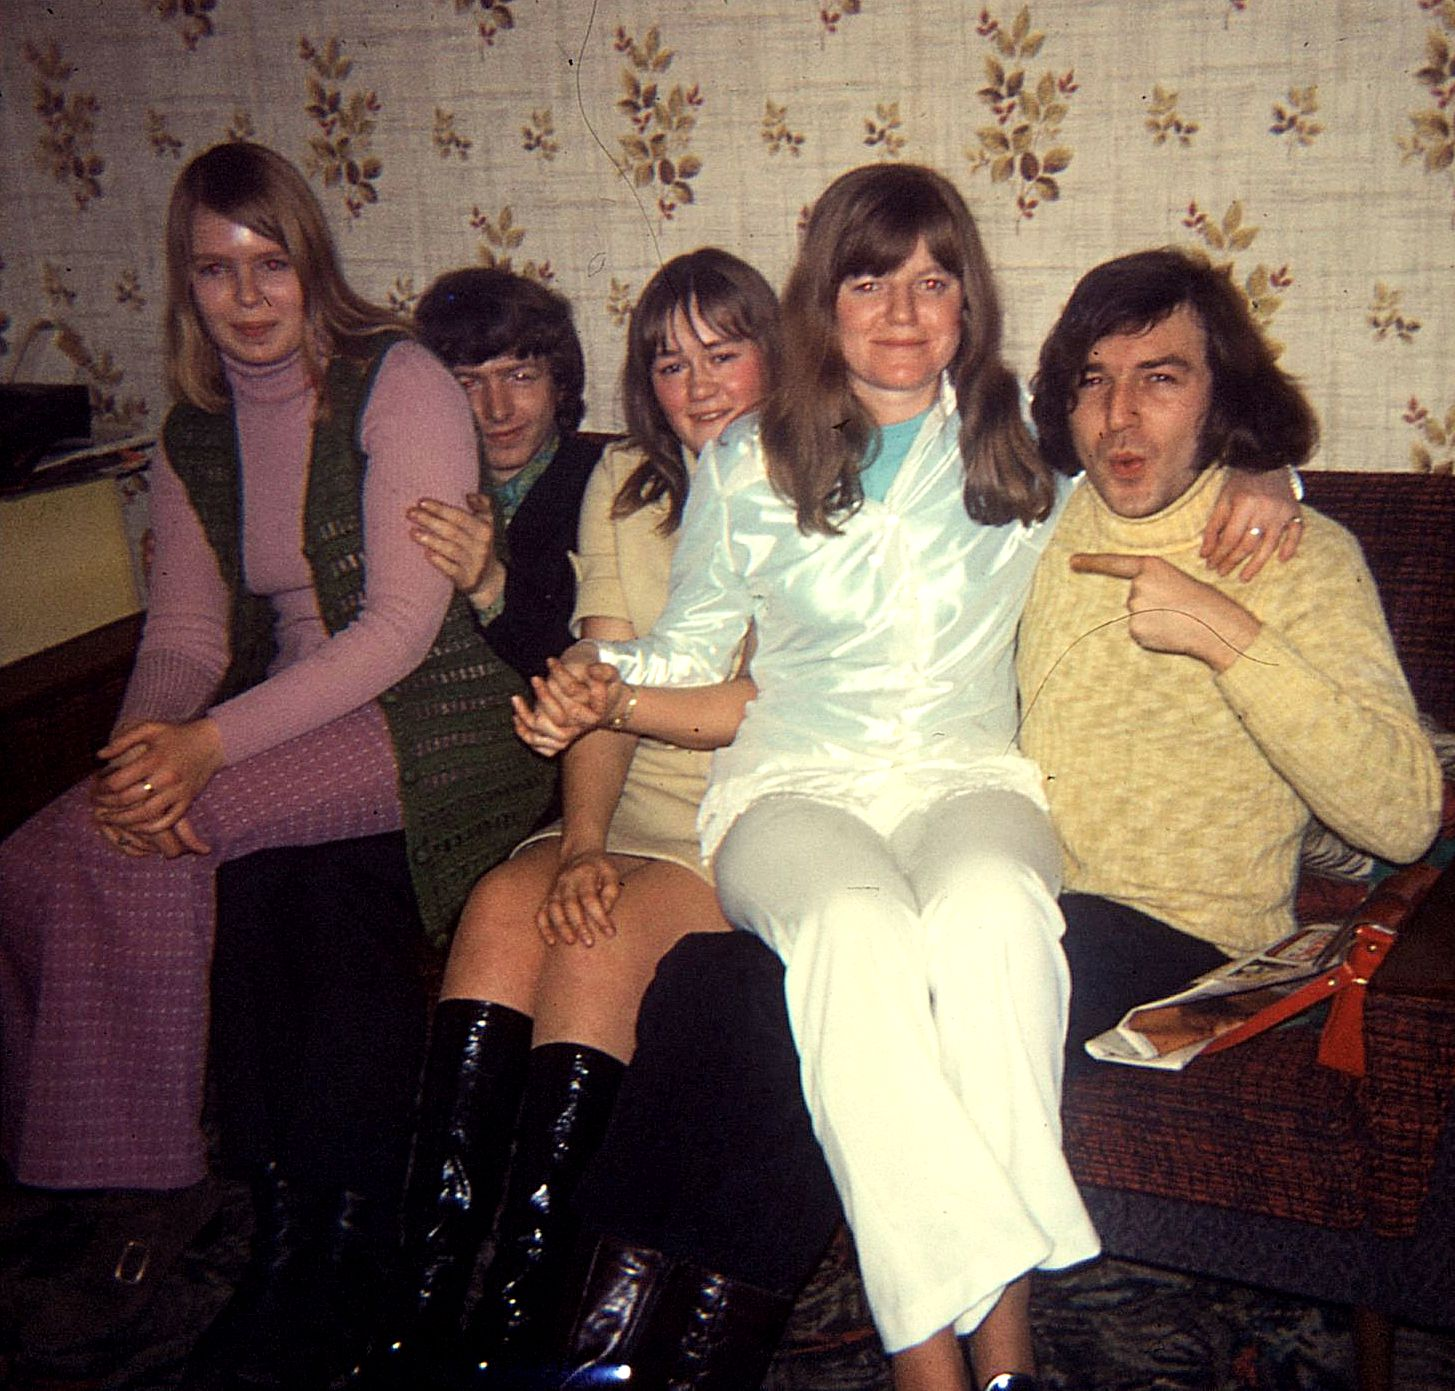 134._Pam,Chris,Jackie,Lyn,Andy_14.1.71-s